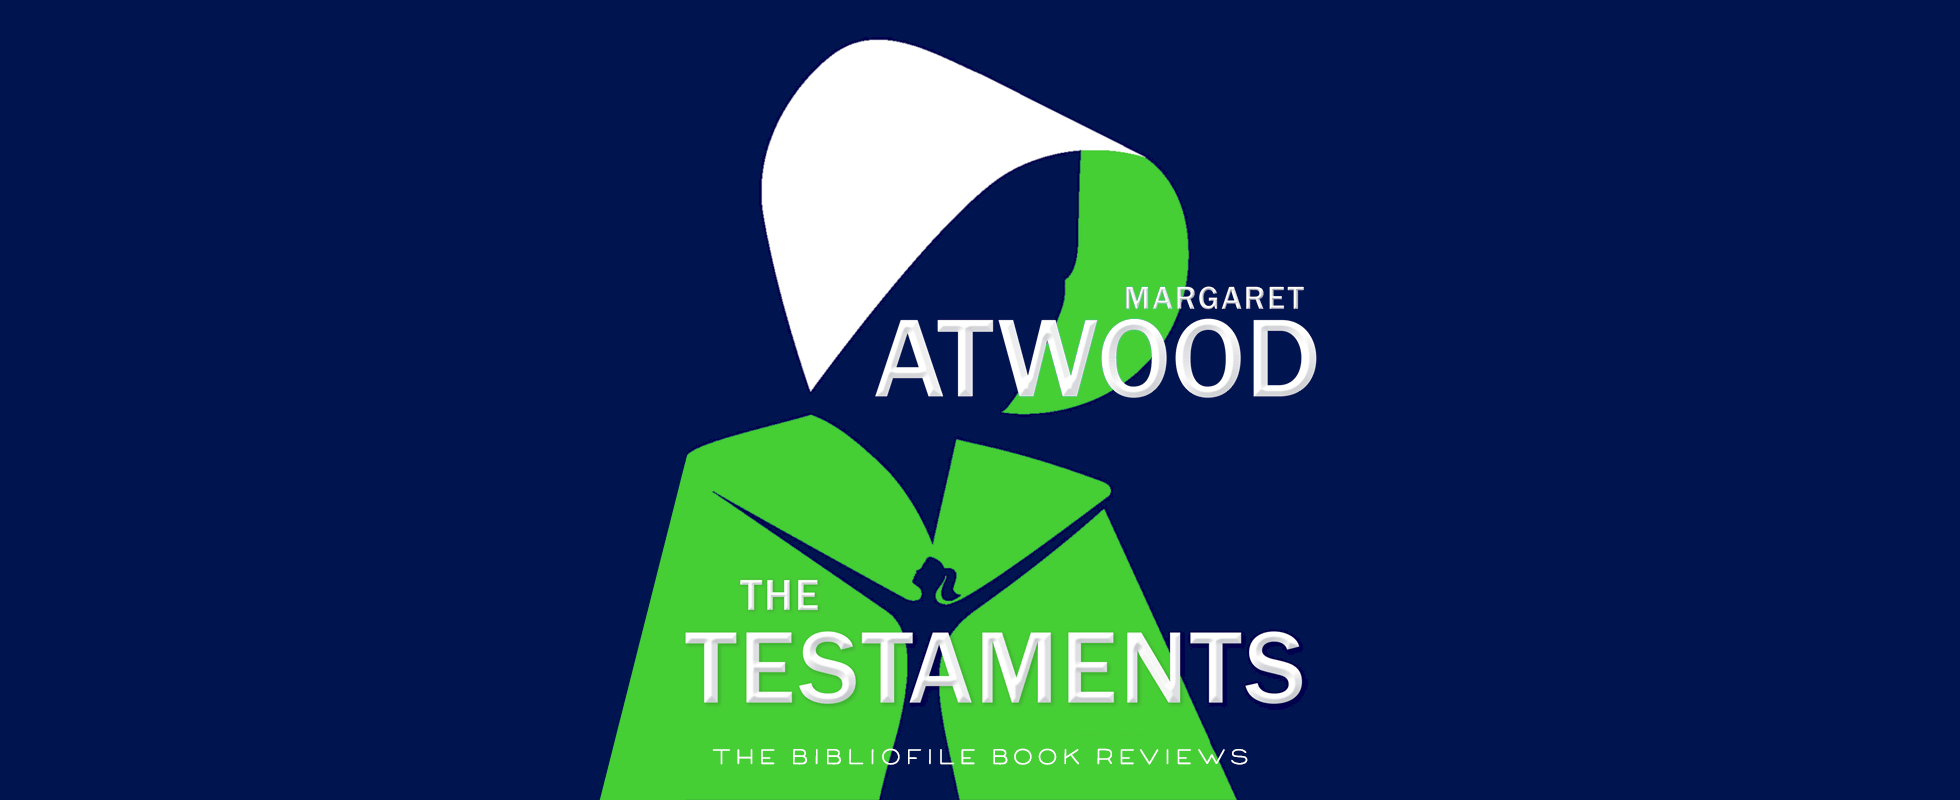 testaments margaret atwood handmaid's tale summary review synopsis plot